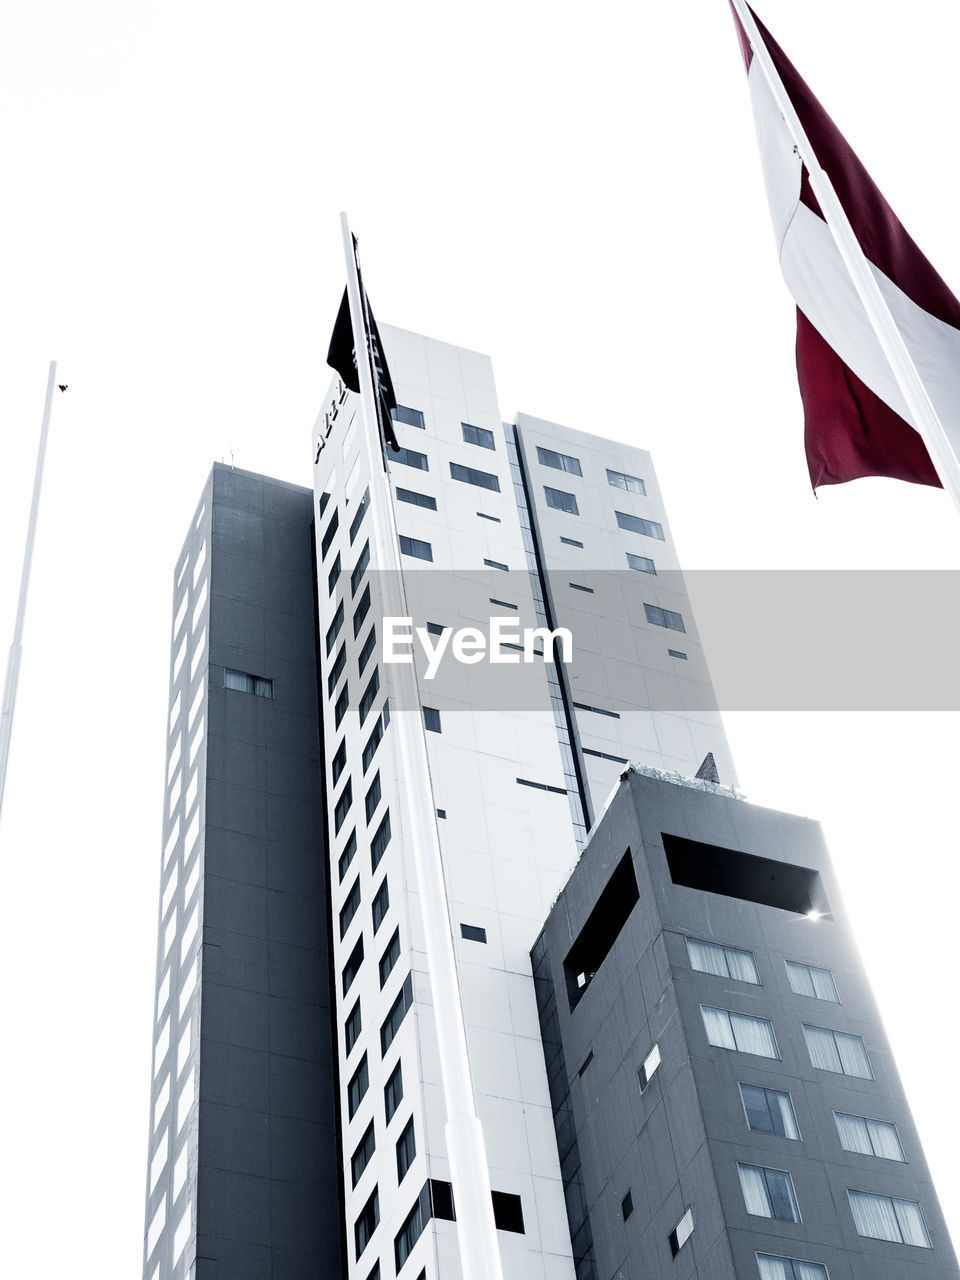 flag, patriotism, low angle view, building exterior, architecture, no people, built structure, day, outdoors, clear sky, city, sky